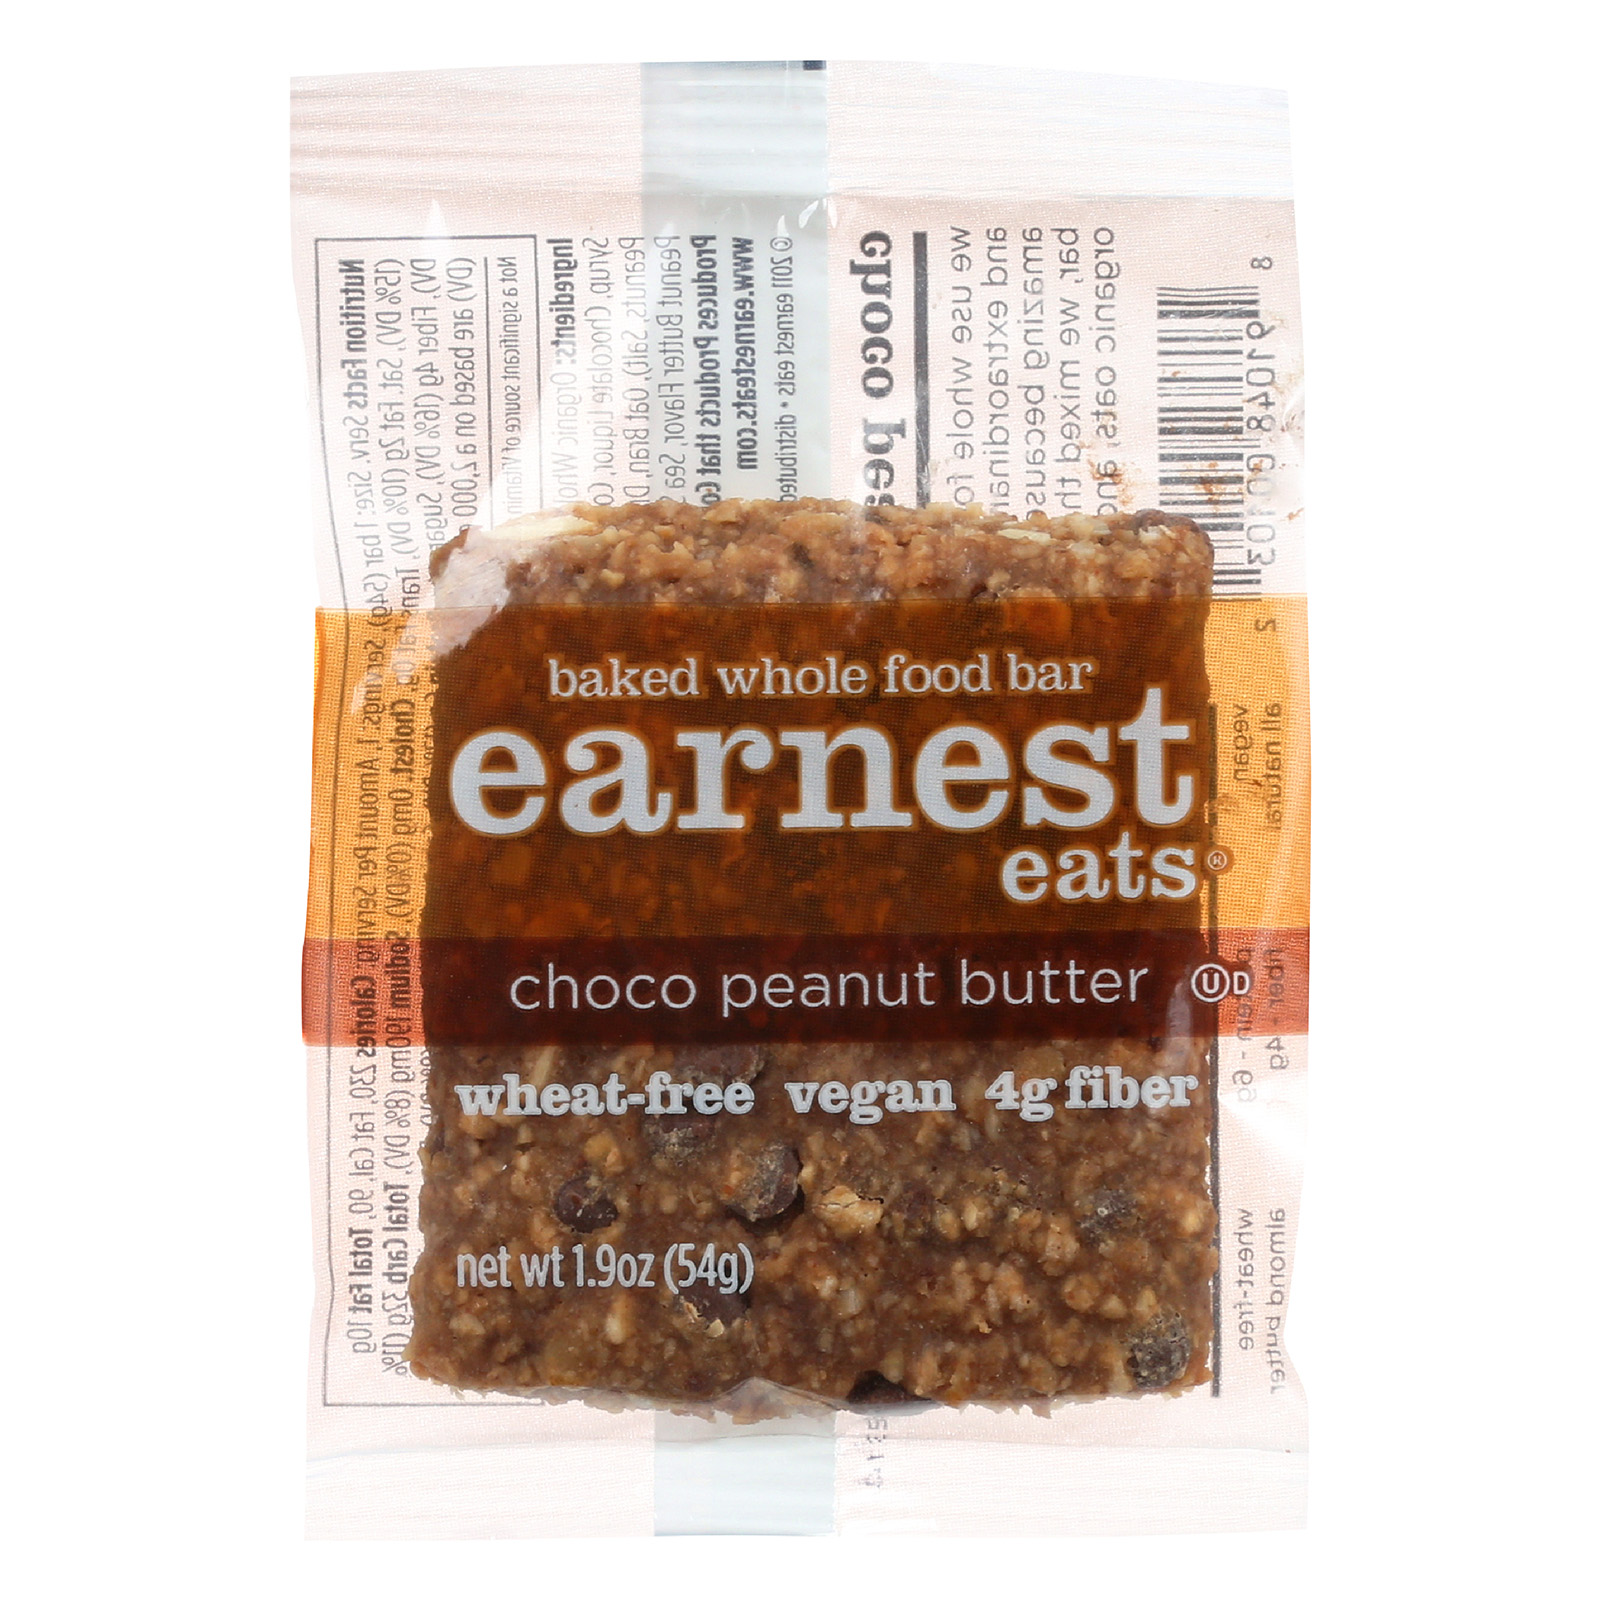 Earnest Eats Baked Whole Food Bar - Chocolate Peanut Butter - Case of 12 - 1.9 oz.